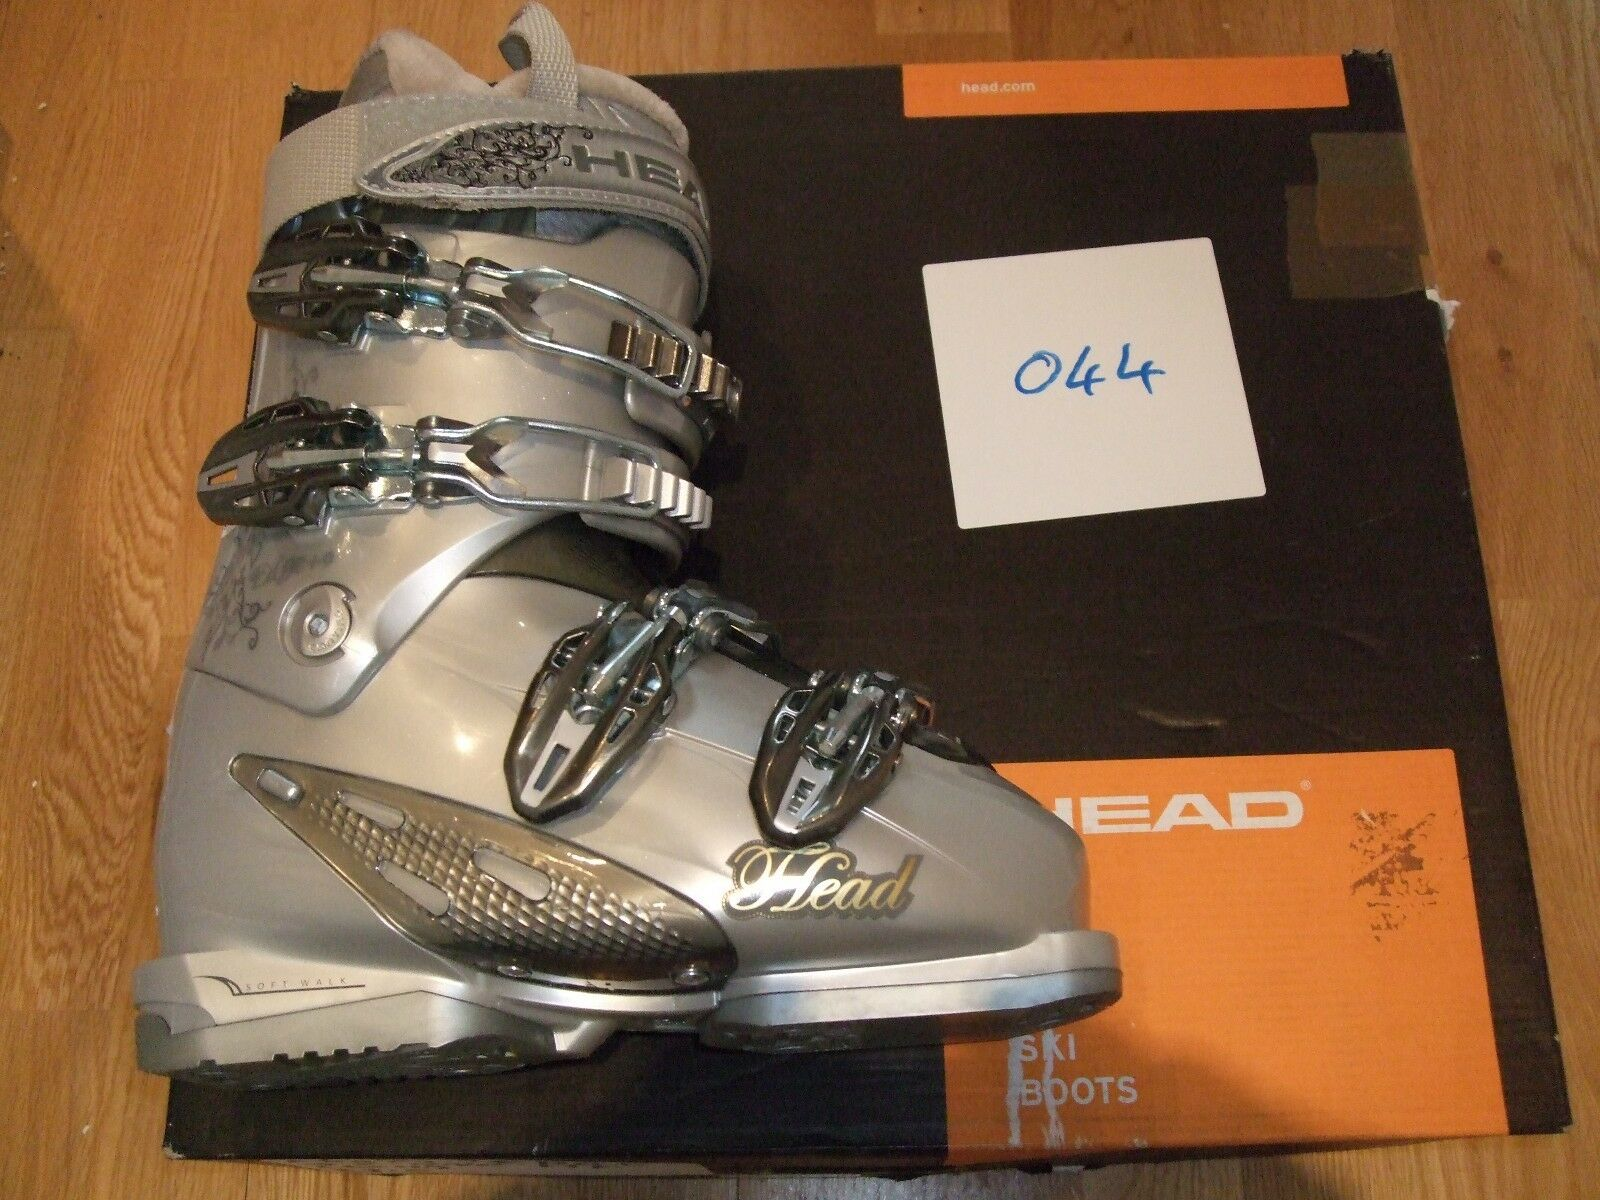 Head Edge 91HF Ski Boots (size 23) - New  condition  buy brand